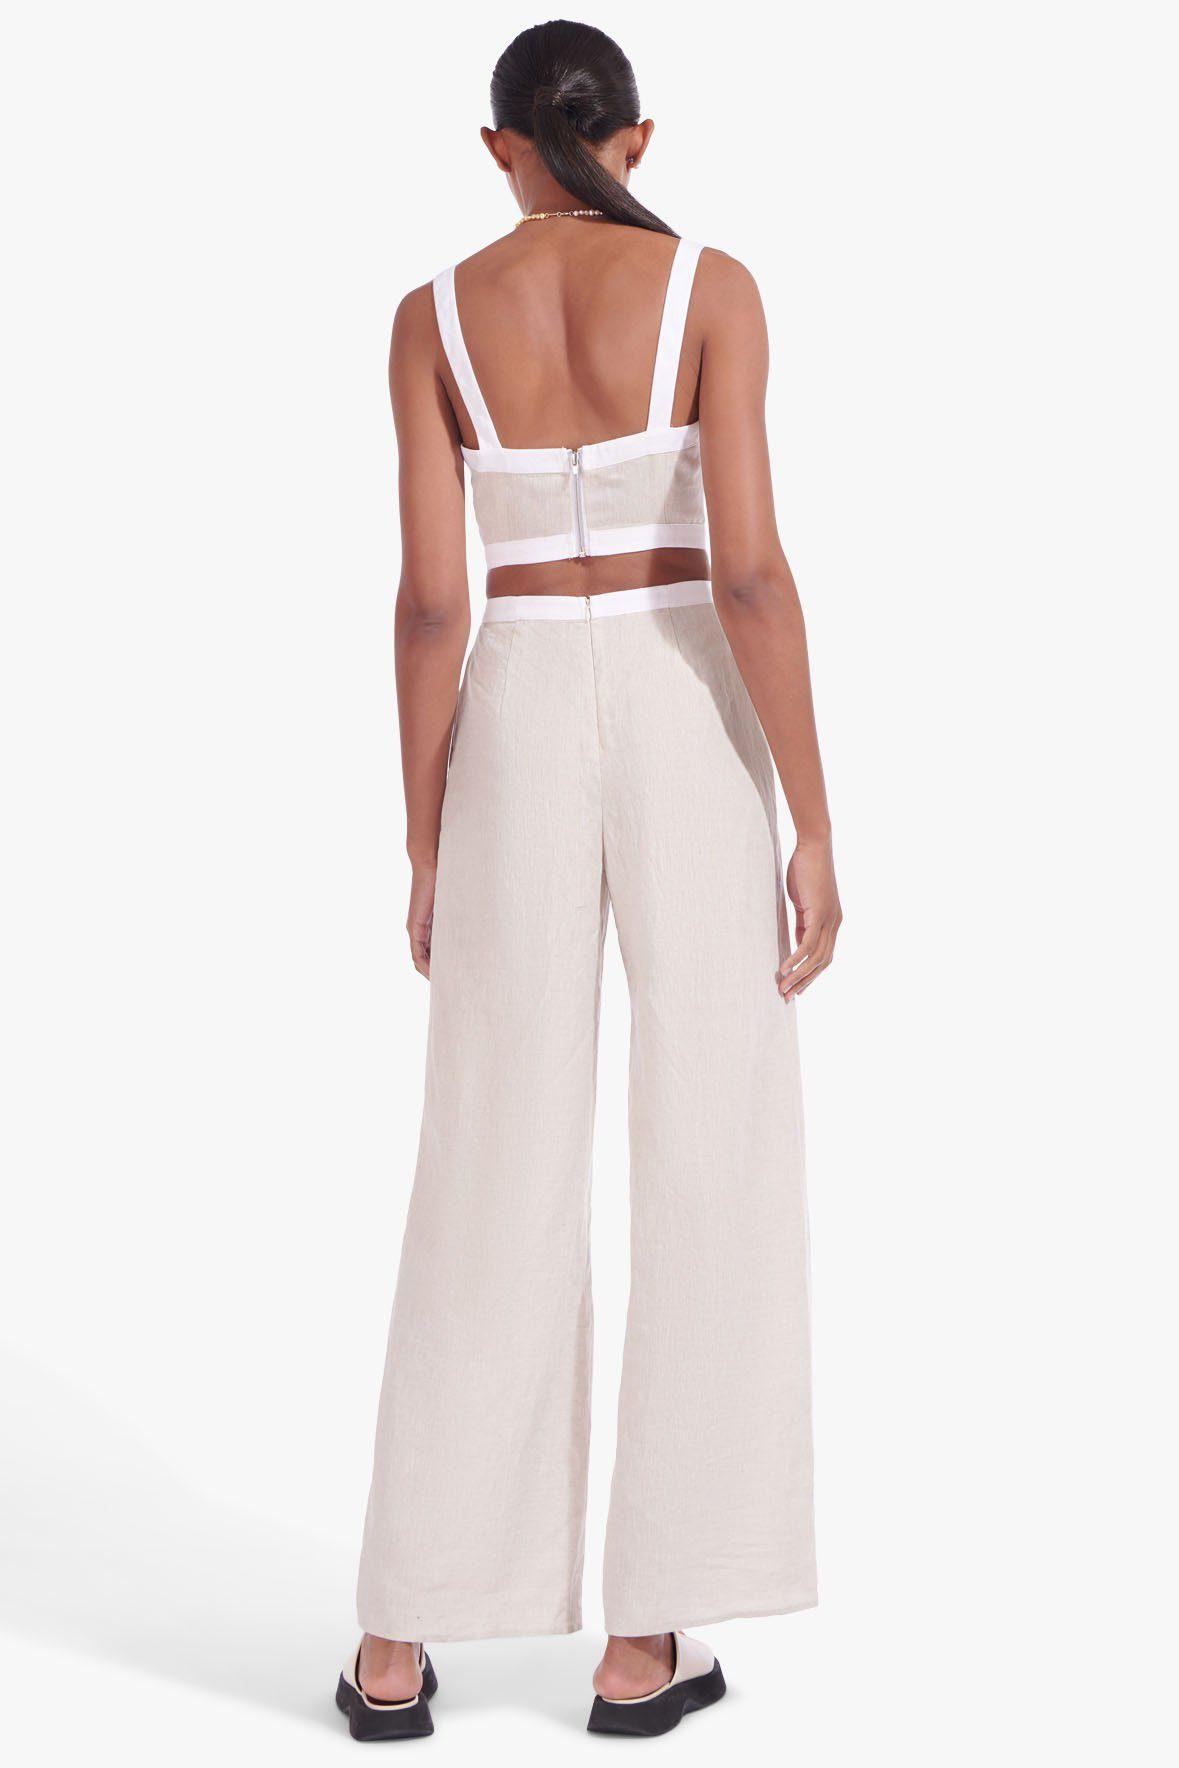 SHELLY JUMPSUIT | NATURAL WHITE 4